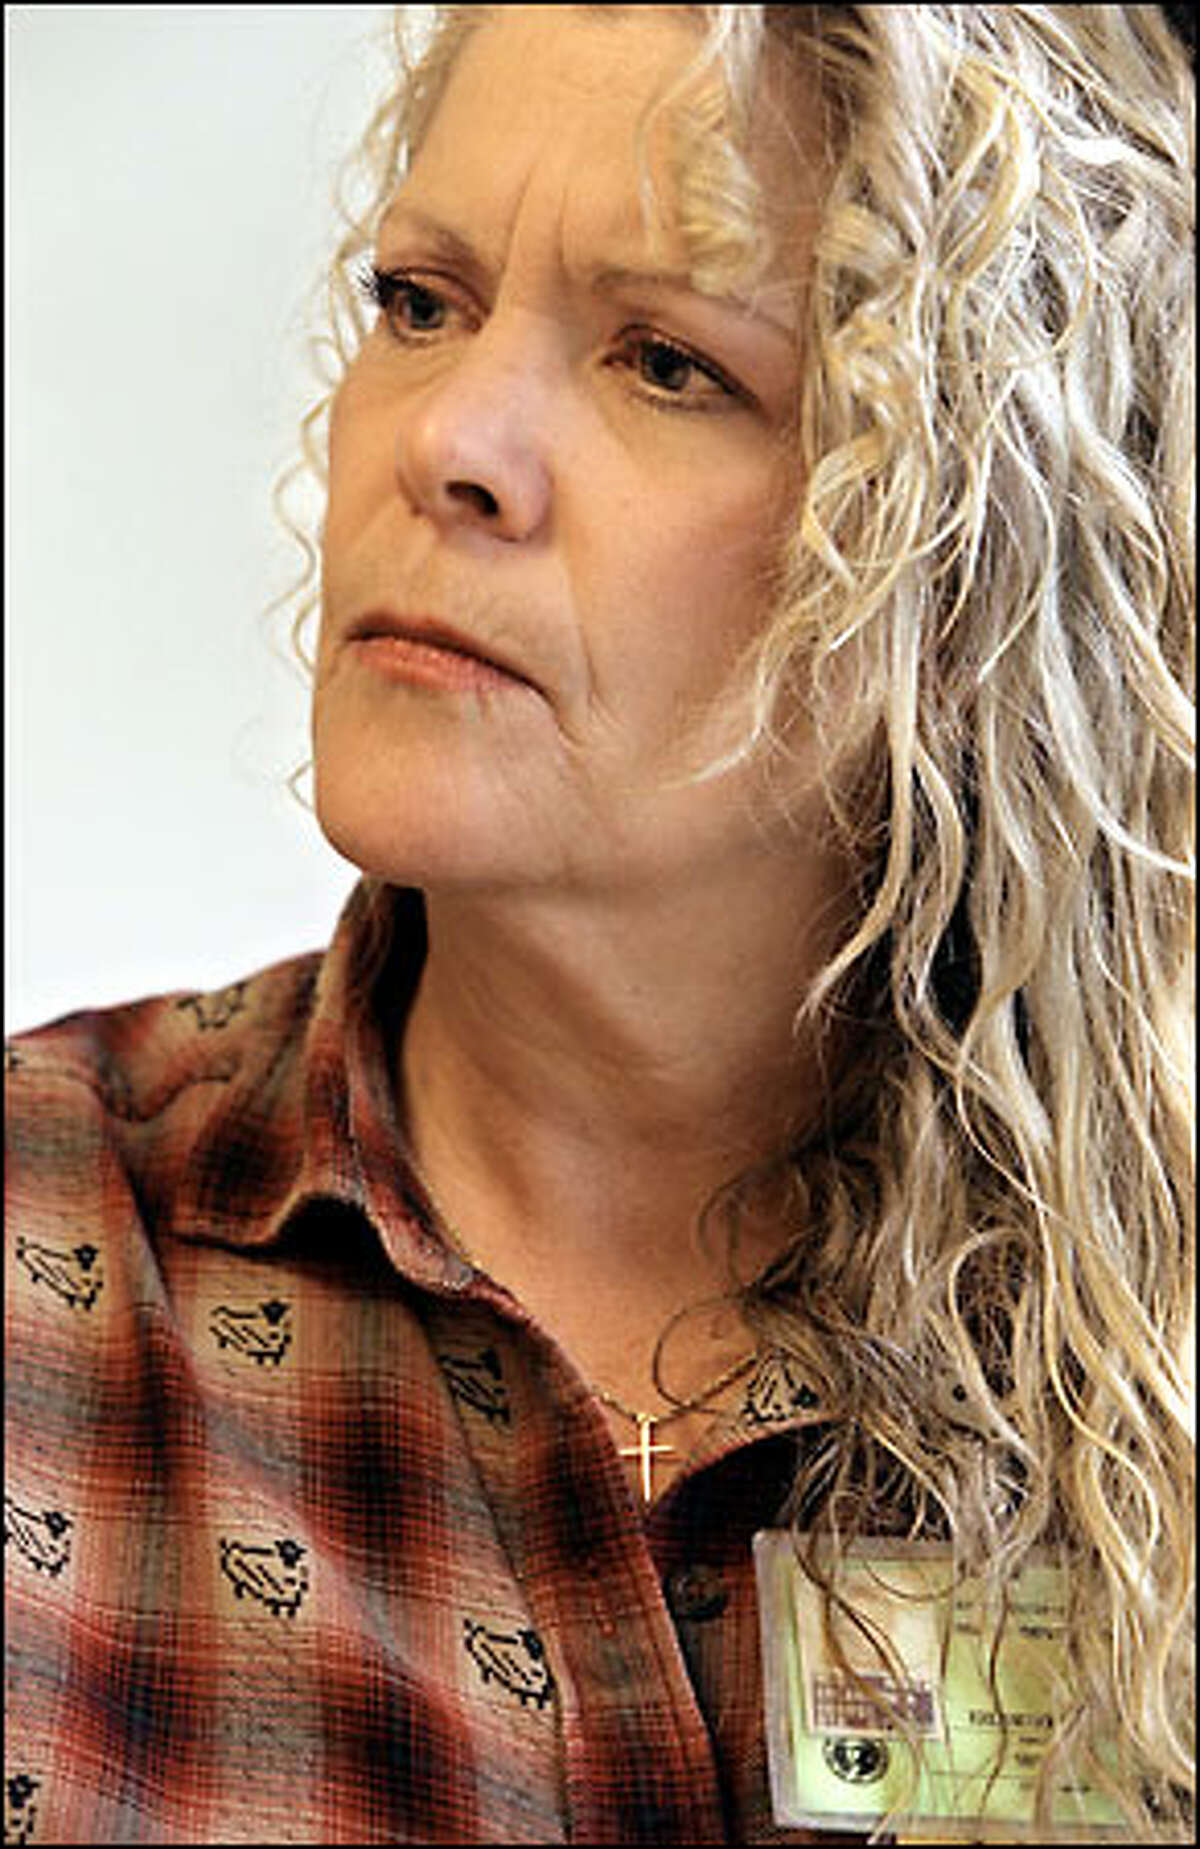 Noreen Erlandson is serving a 40-year prison term.